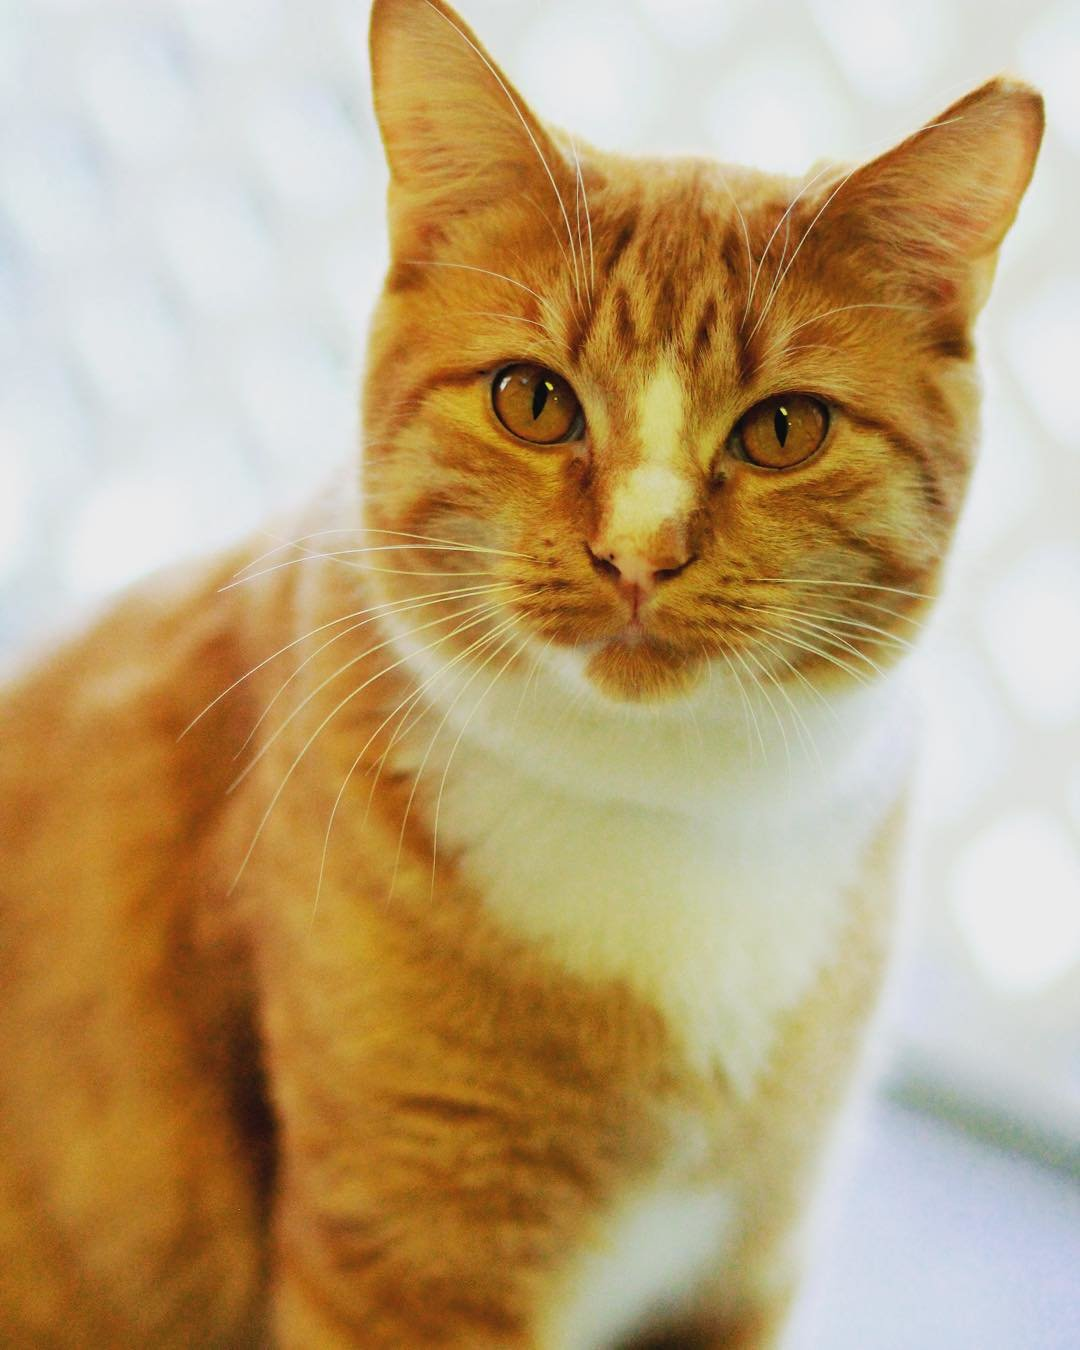 Creamsicle a 2 yr old cat for adoption at Worcester County Humane